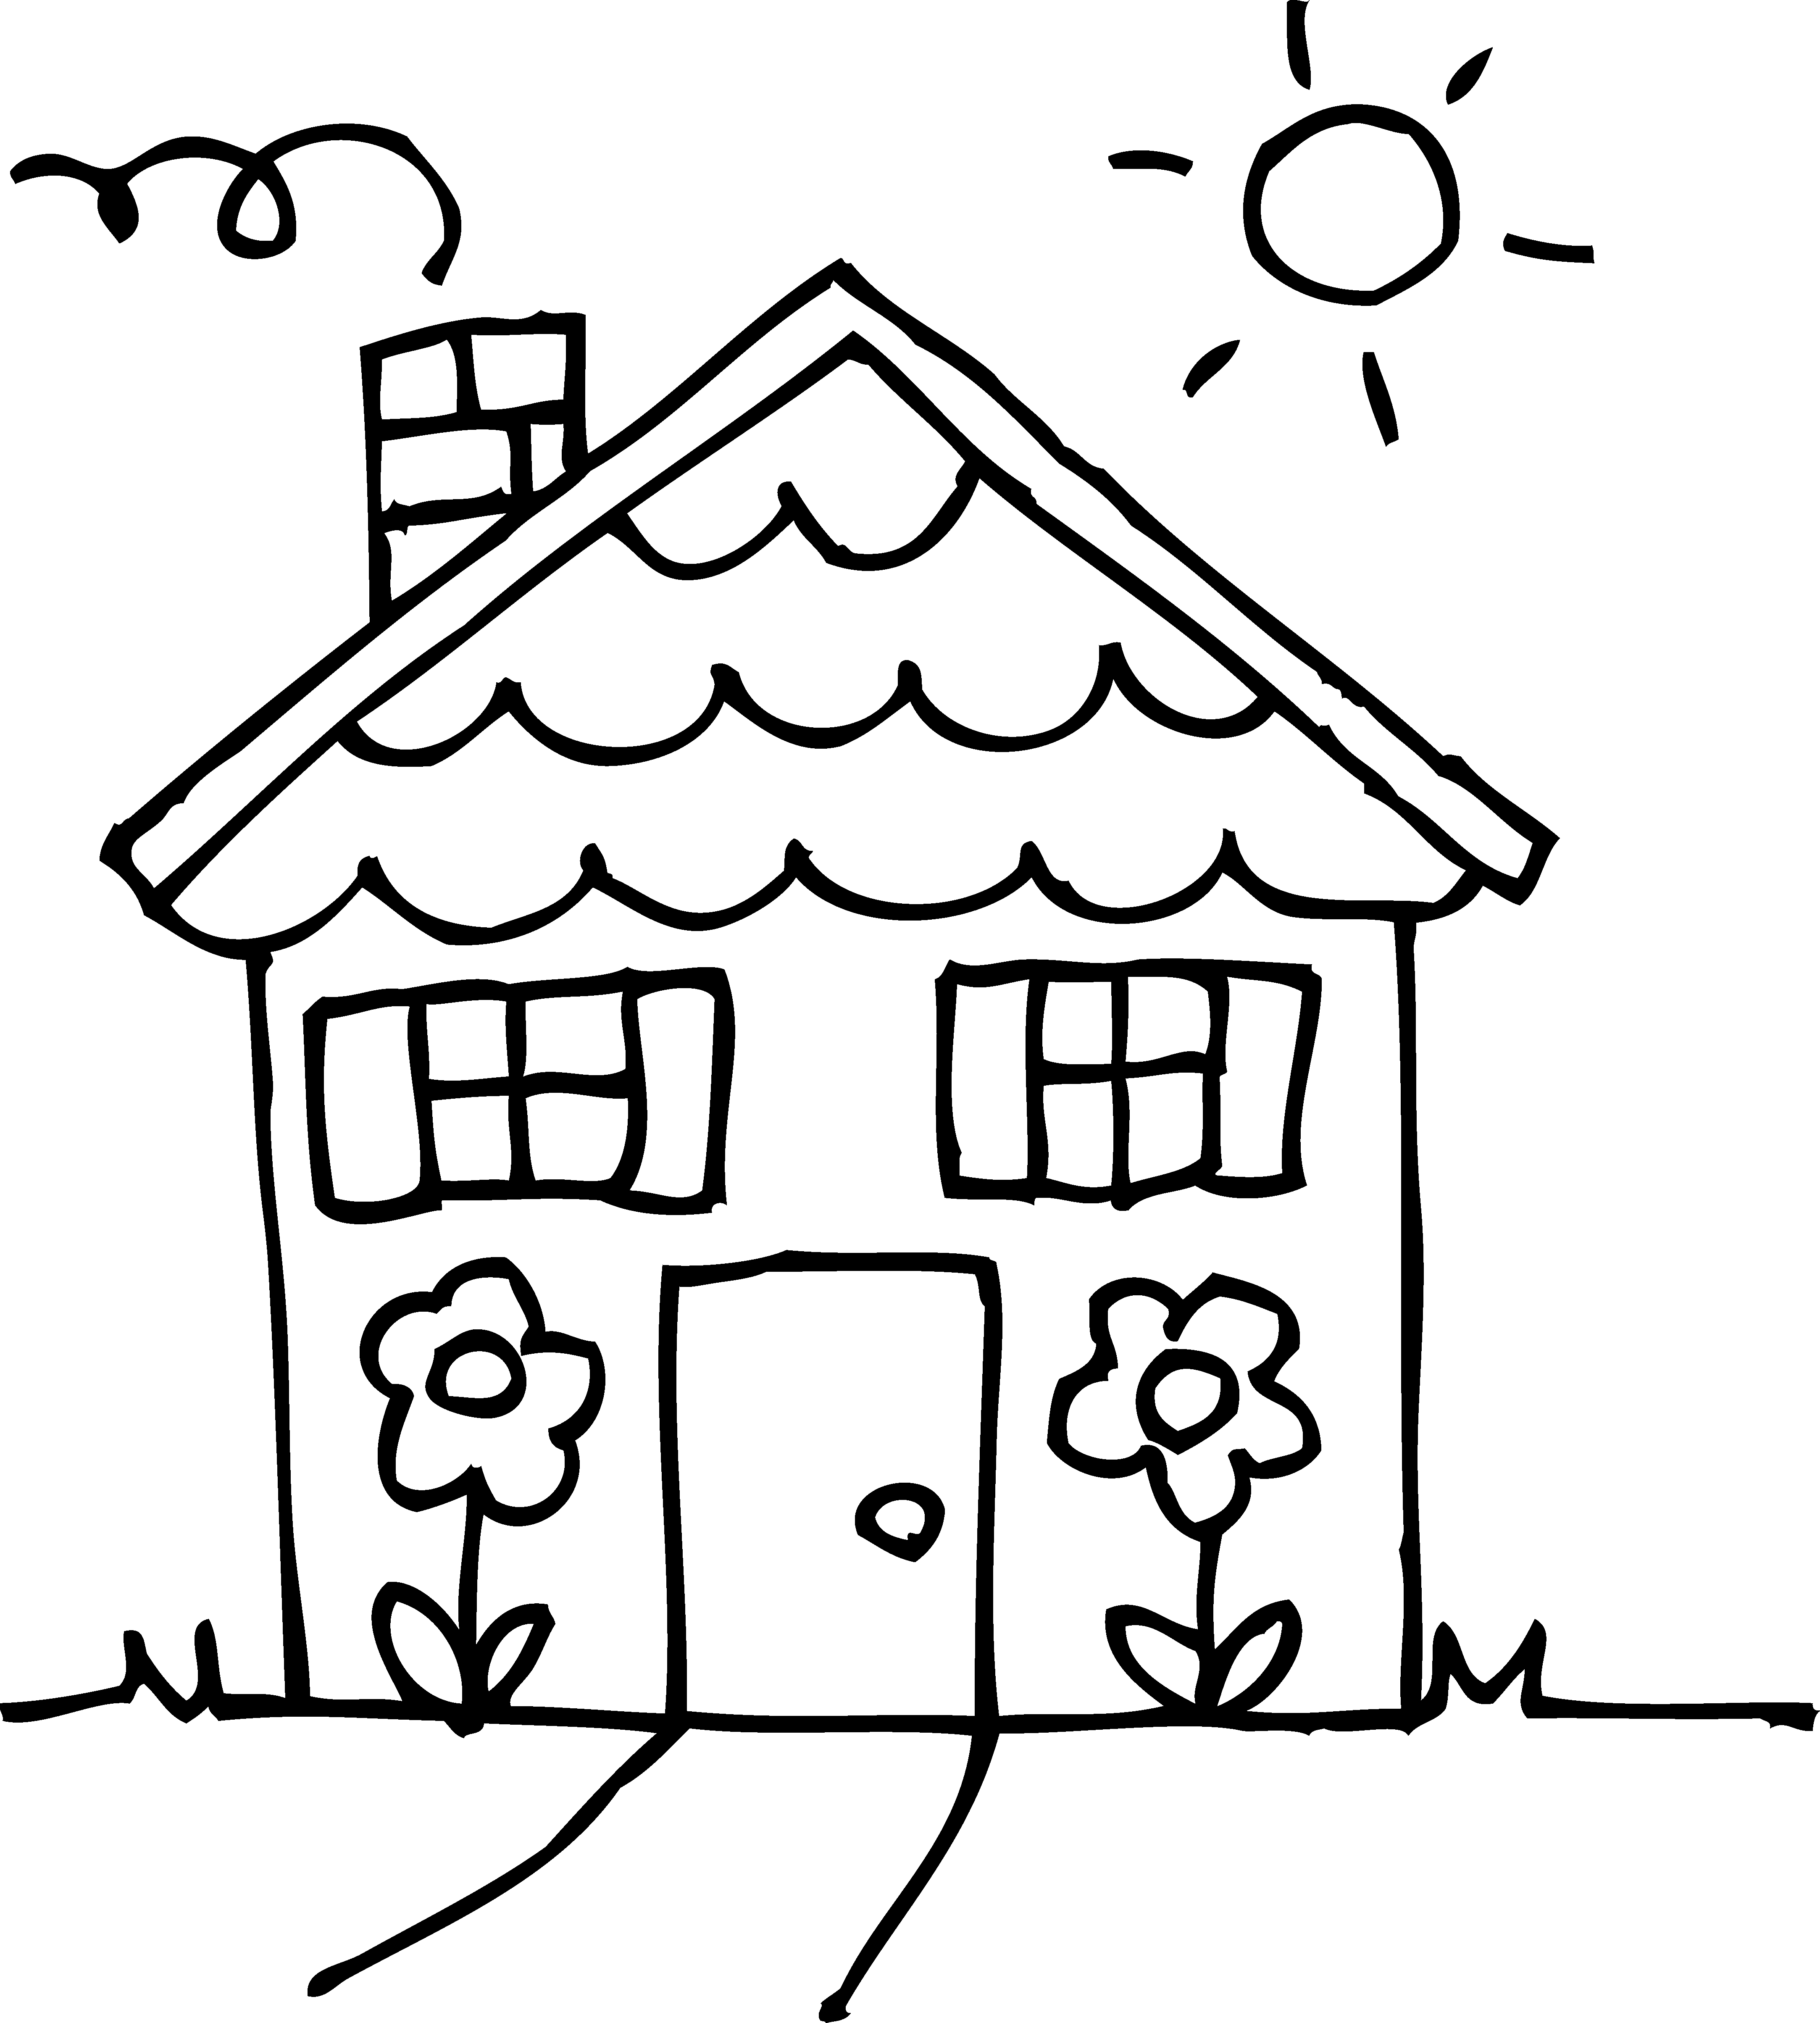 Free clipart printable black and white line art houses. Coloring cliparts download clip